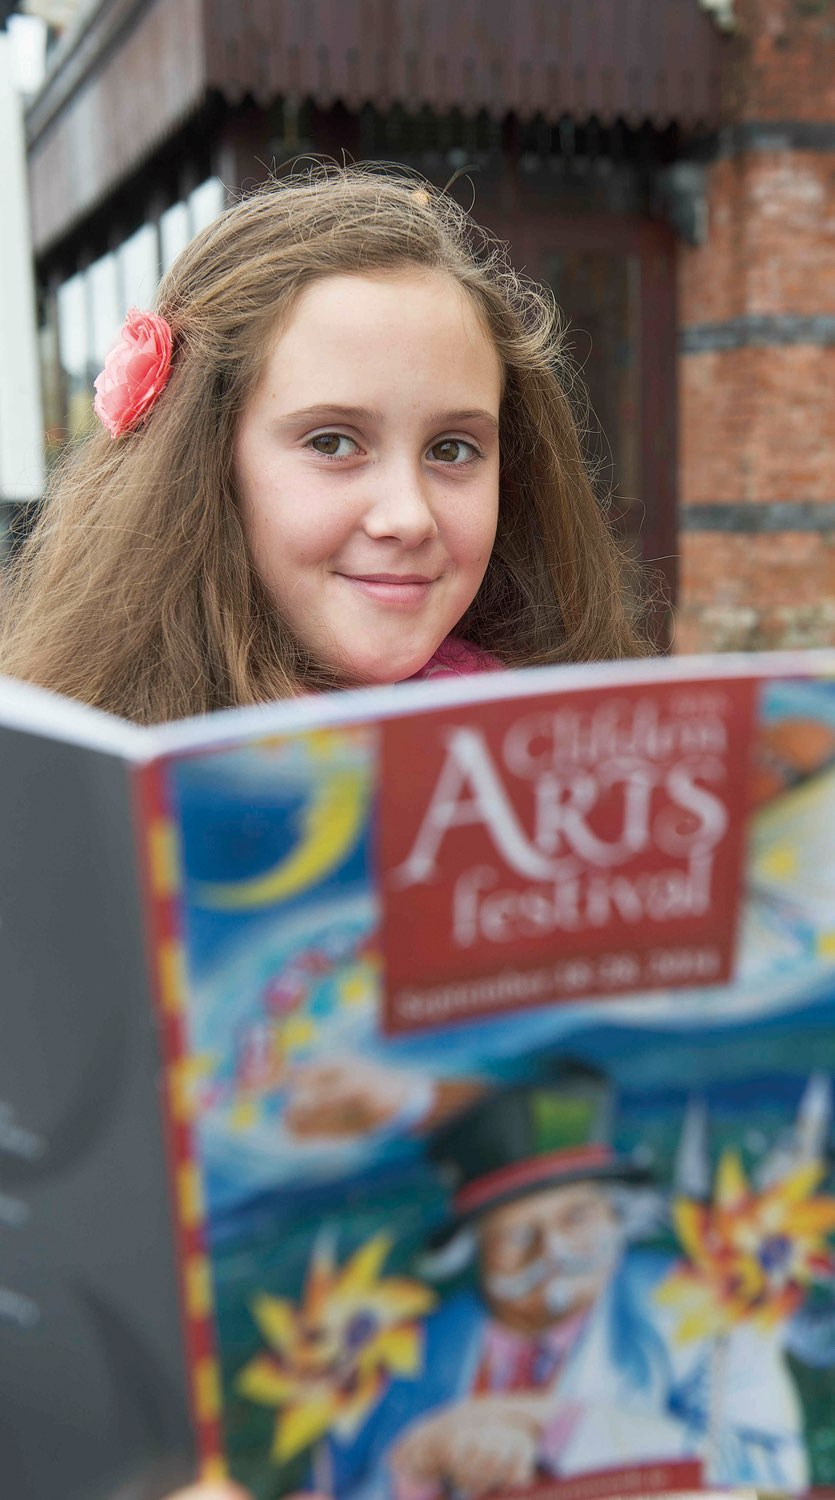 Student from Clifden Community School peers over Clifden Arts Festival booklet